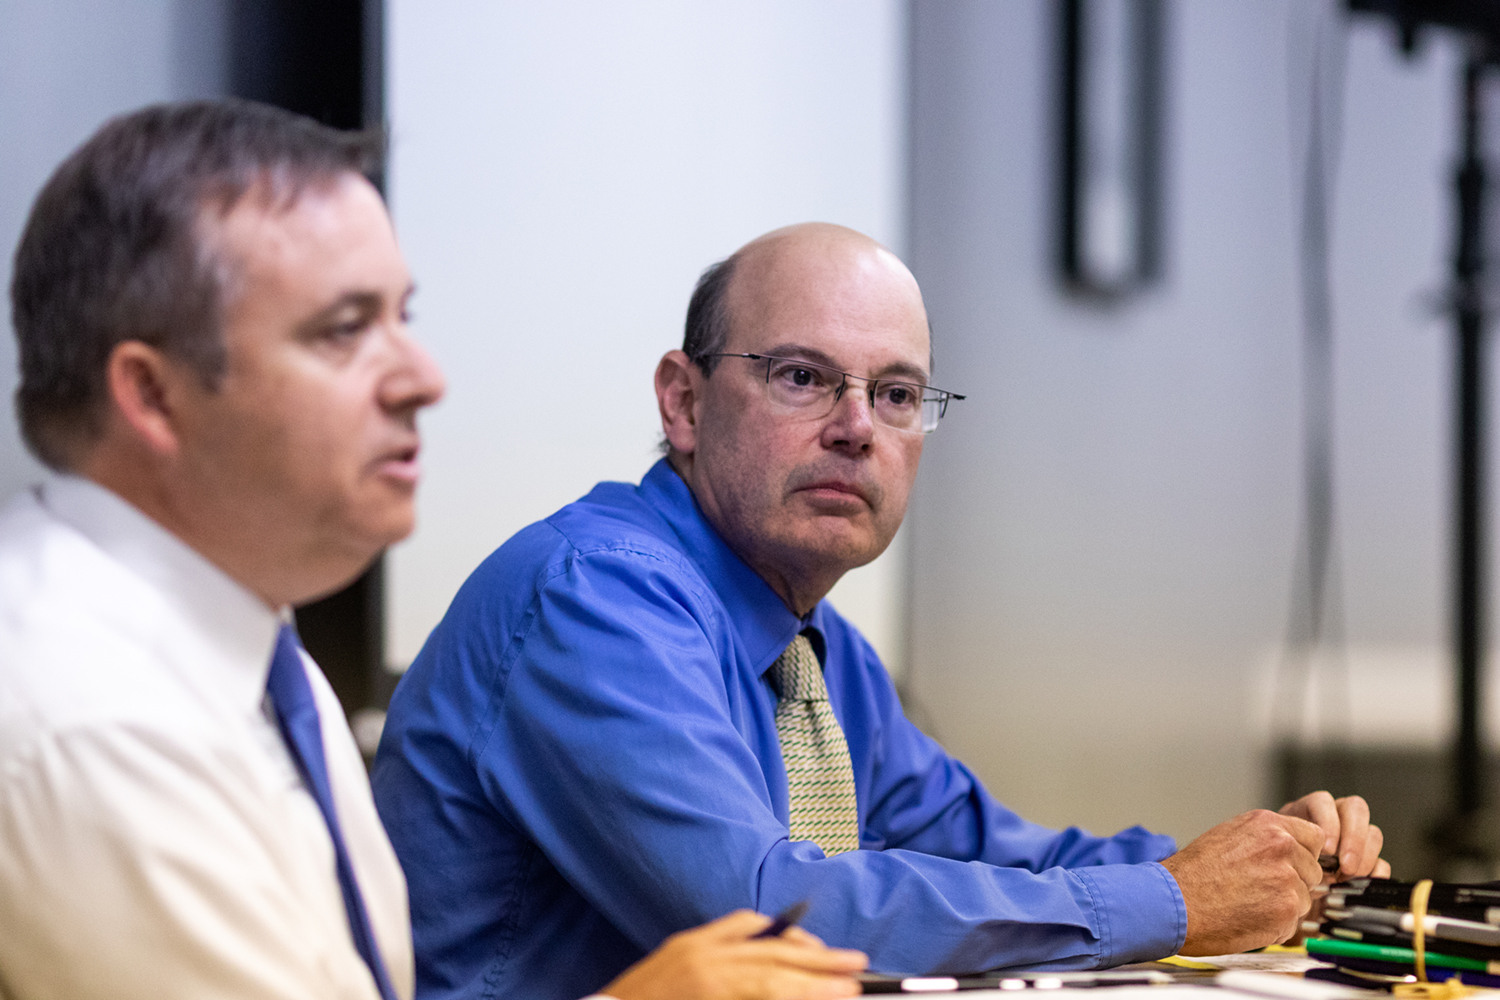 Professor Russell Ganim (right), President of the University of Iowa Faculty Senate, leads a discussion with forum attendees during the provost search committee open forum in the IMU on Thursday, Aug. 23, 2018.